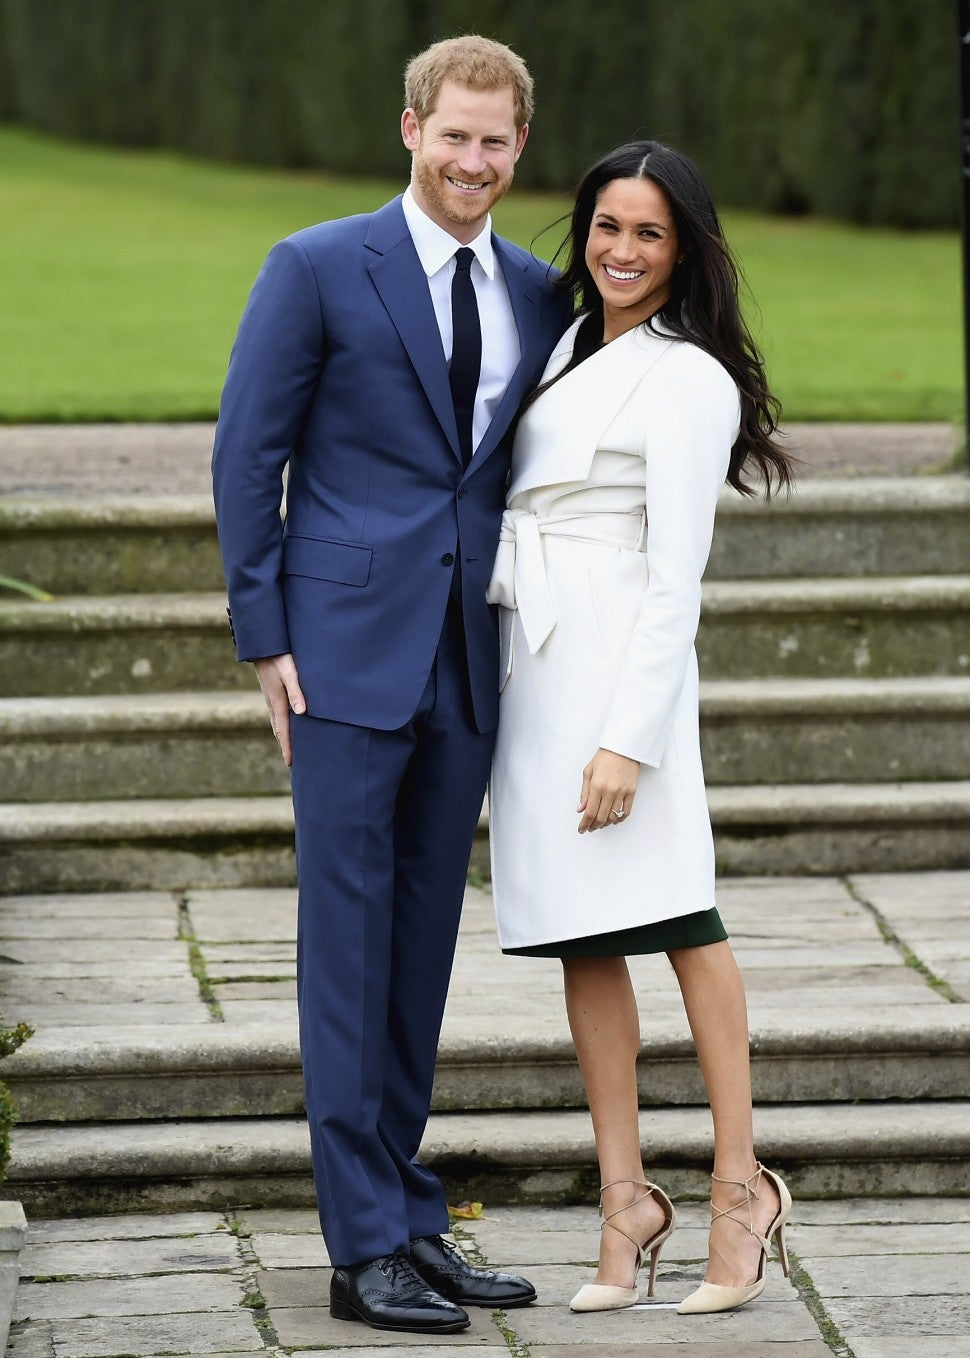 Prince Harry Meghan Markle Engagement Photo Call